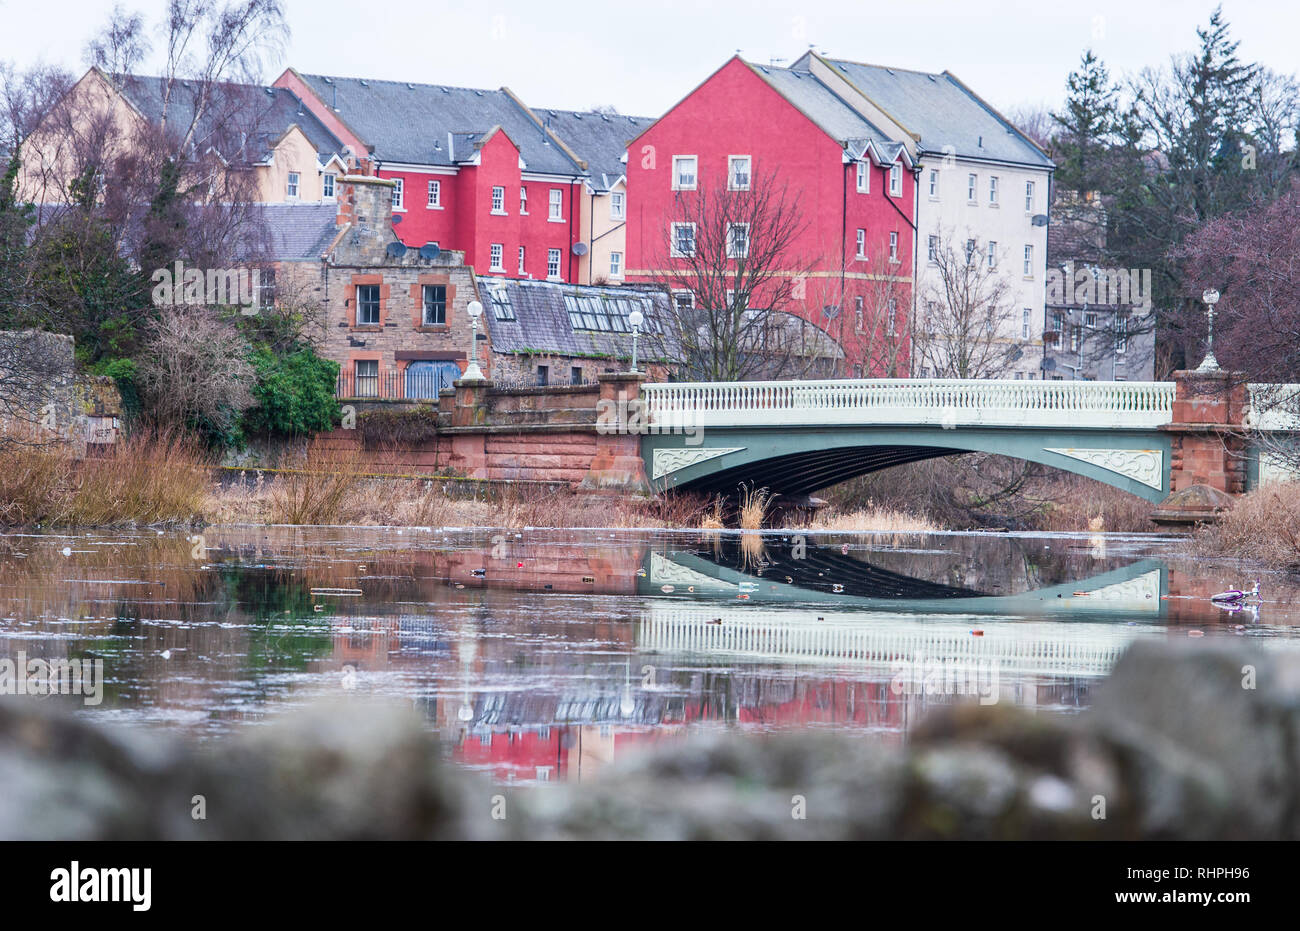 Haddington River Tyne - Stock Image